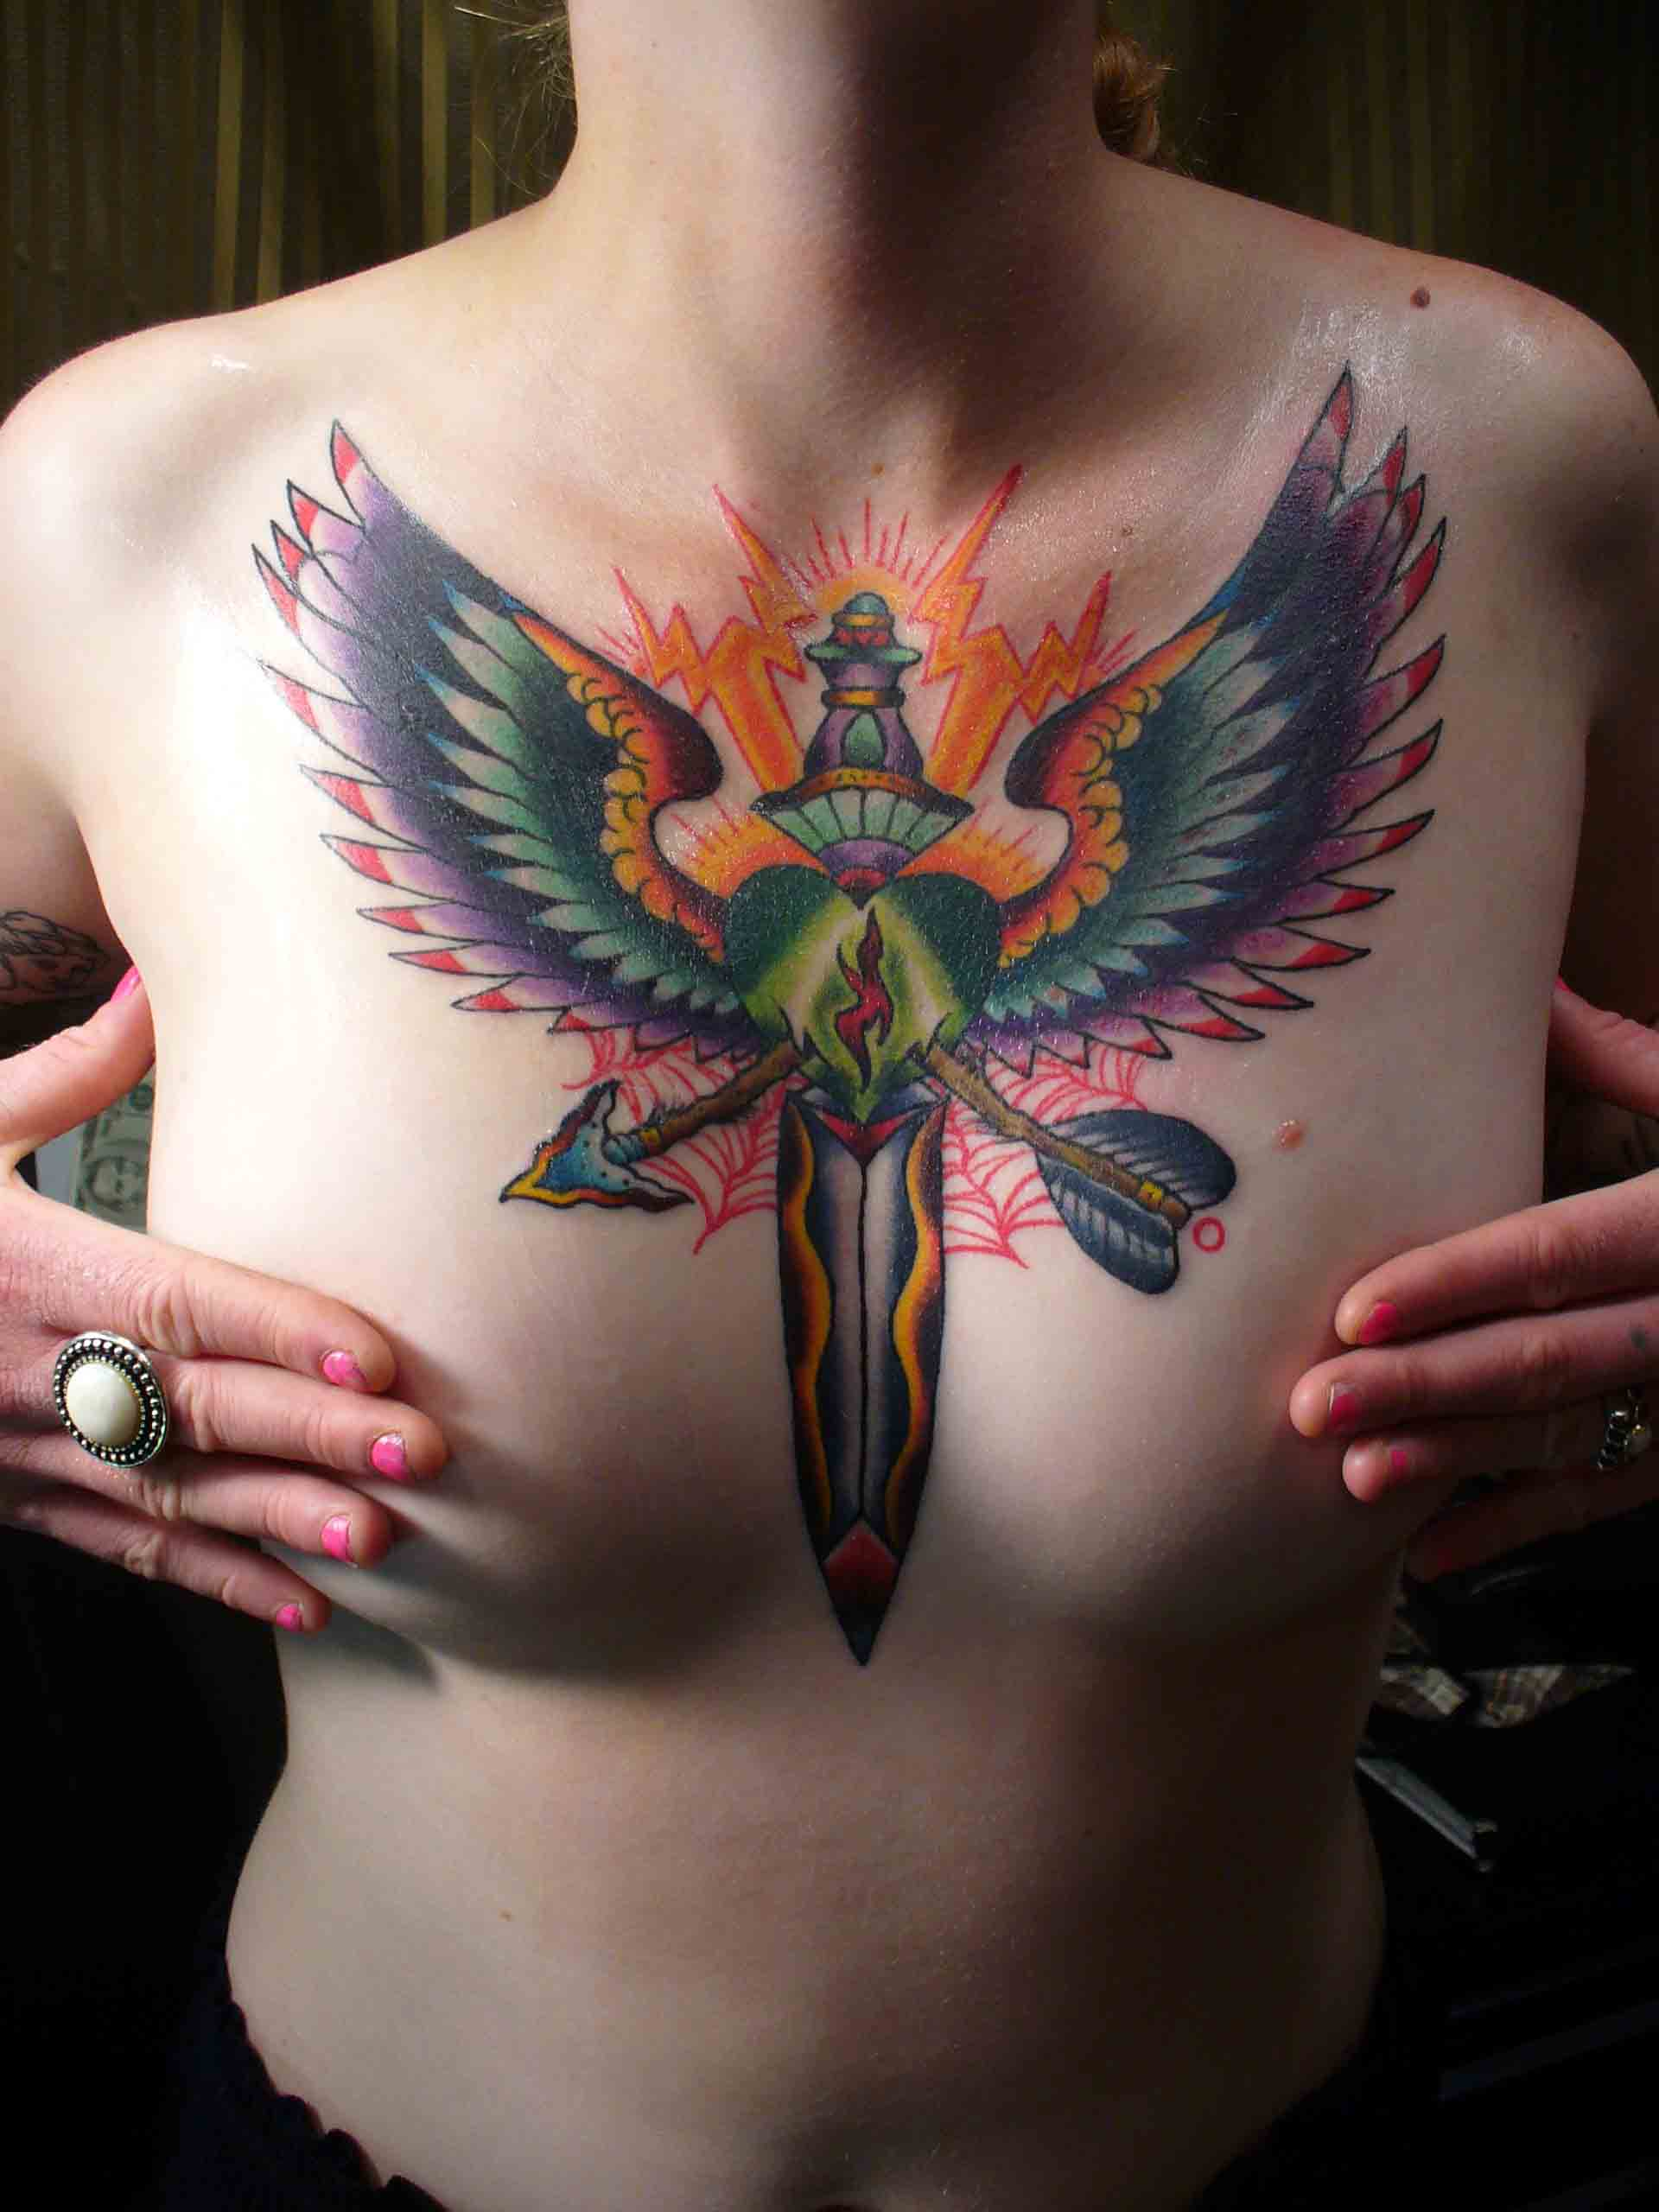 COUNTRY TATTOO: Chest Tattoo